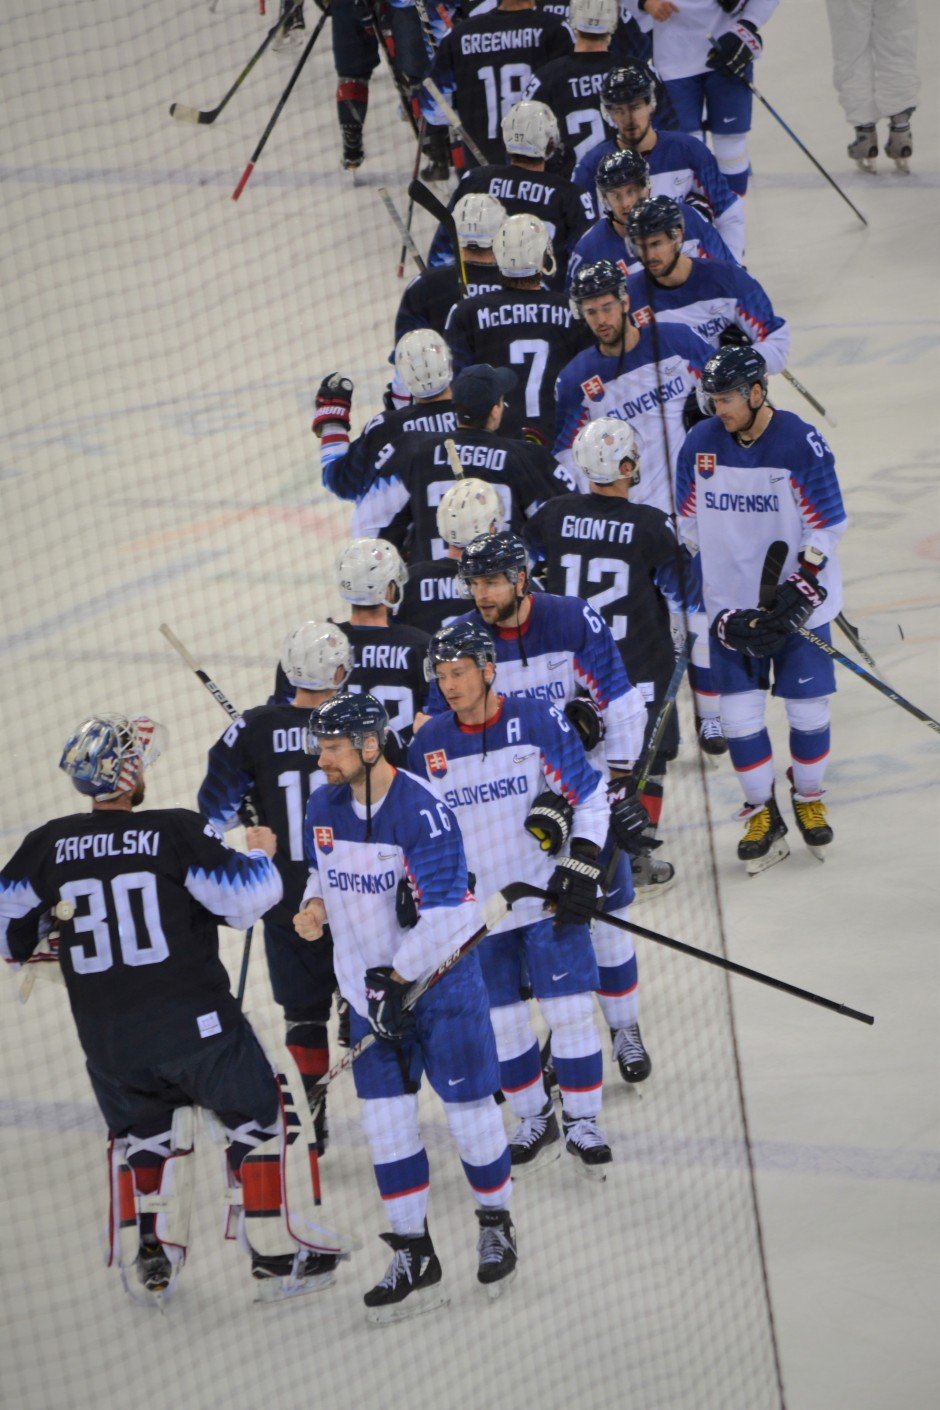 USA Slovakia_end of game